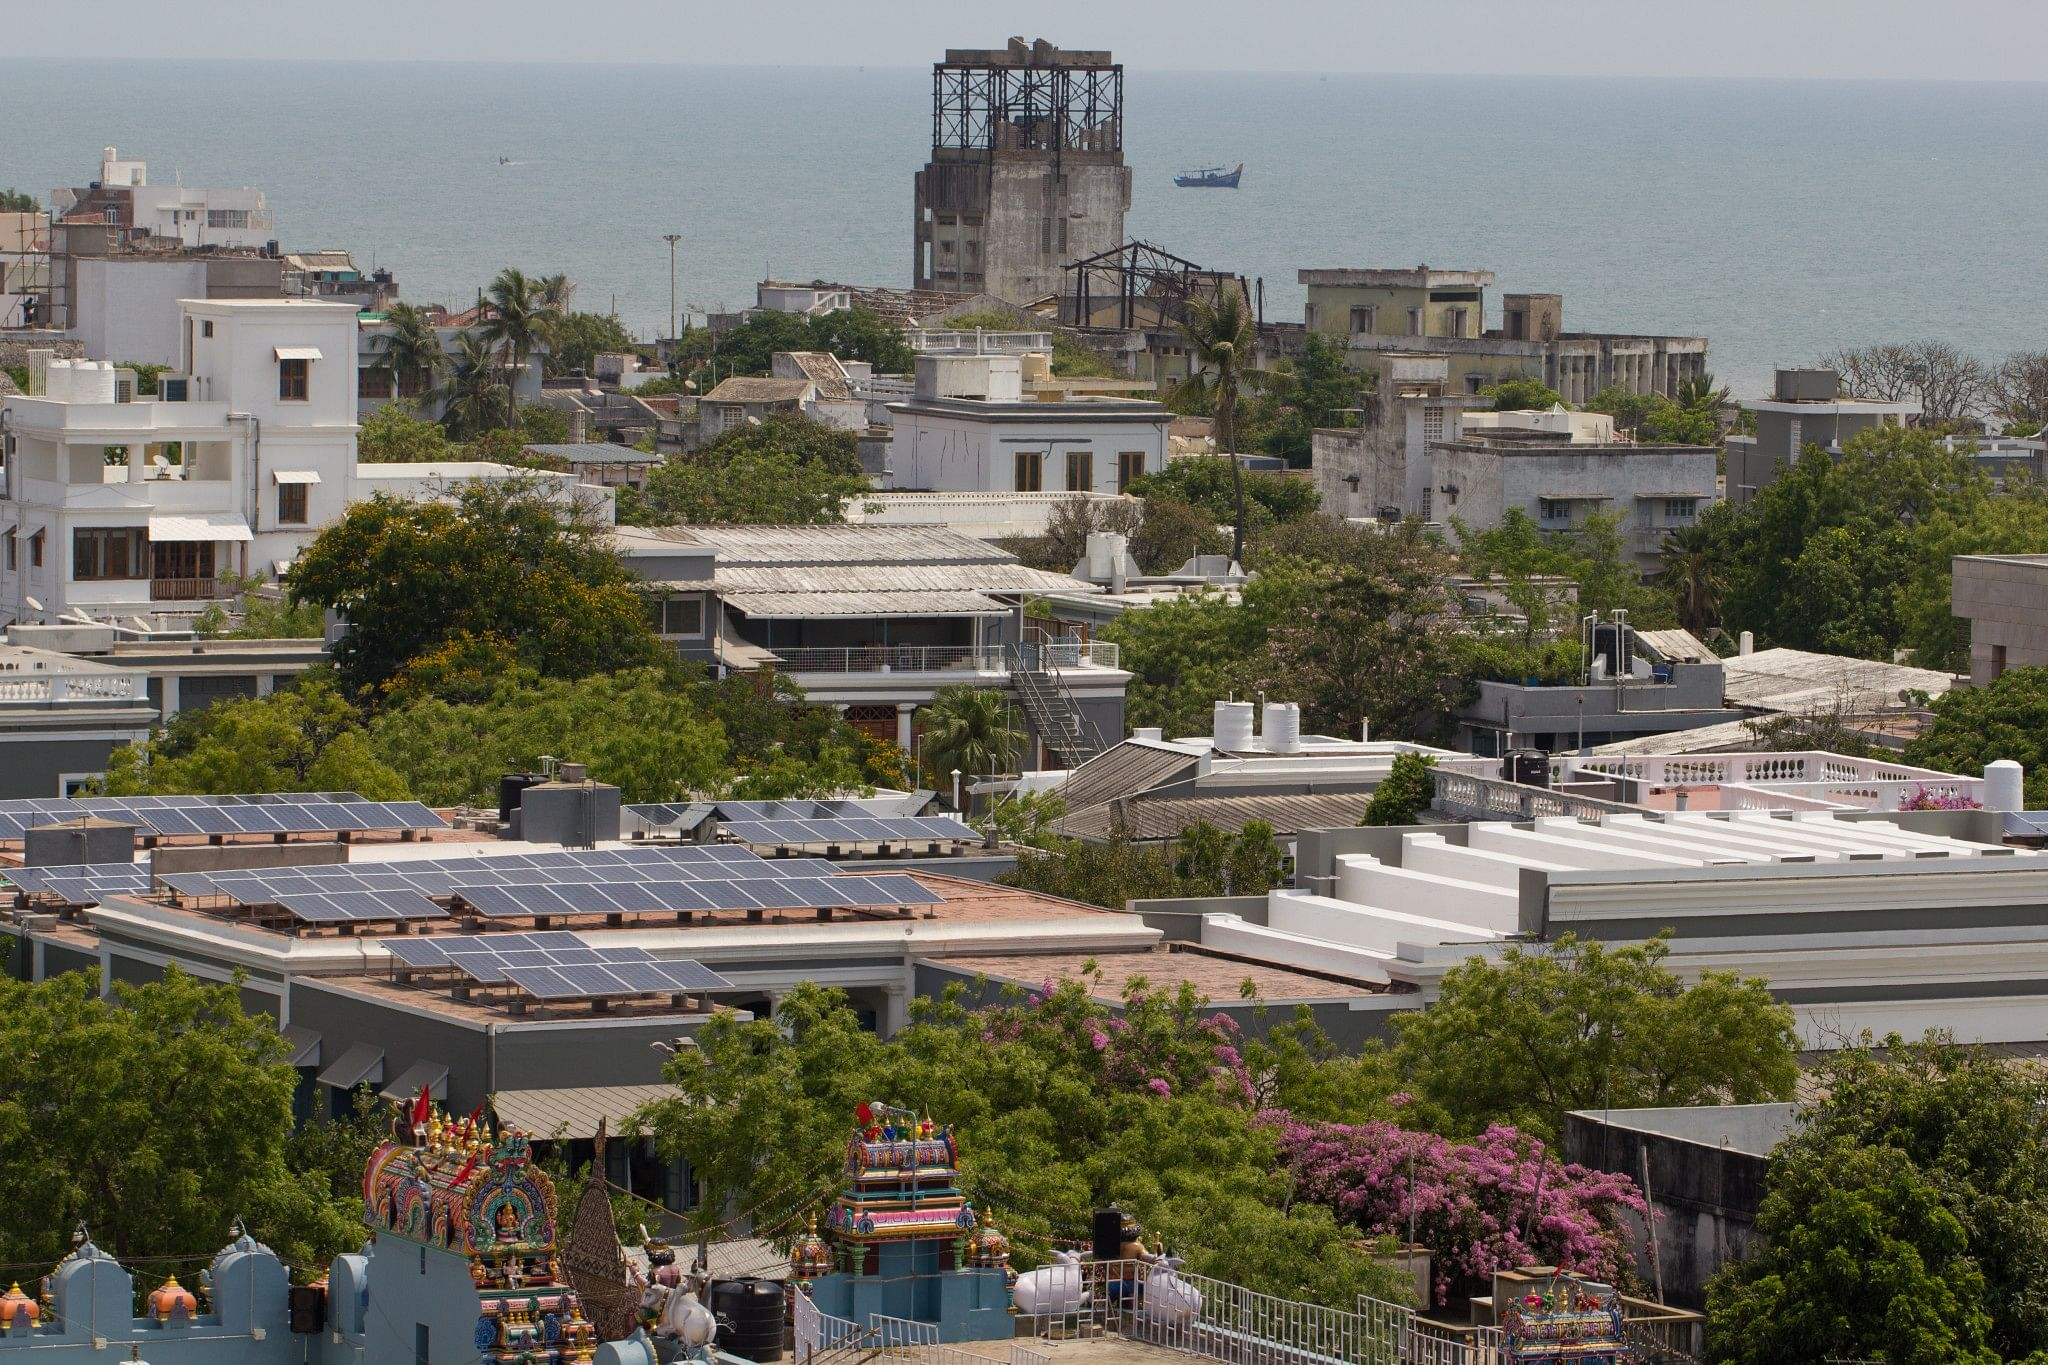 A bird's-eye-view photo of the solar panels installed on SAICE rooftop with the Indian Ocean in the backdrop